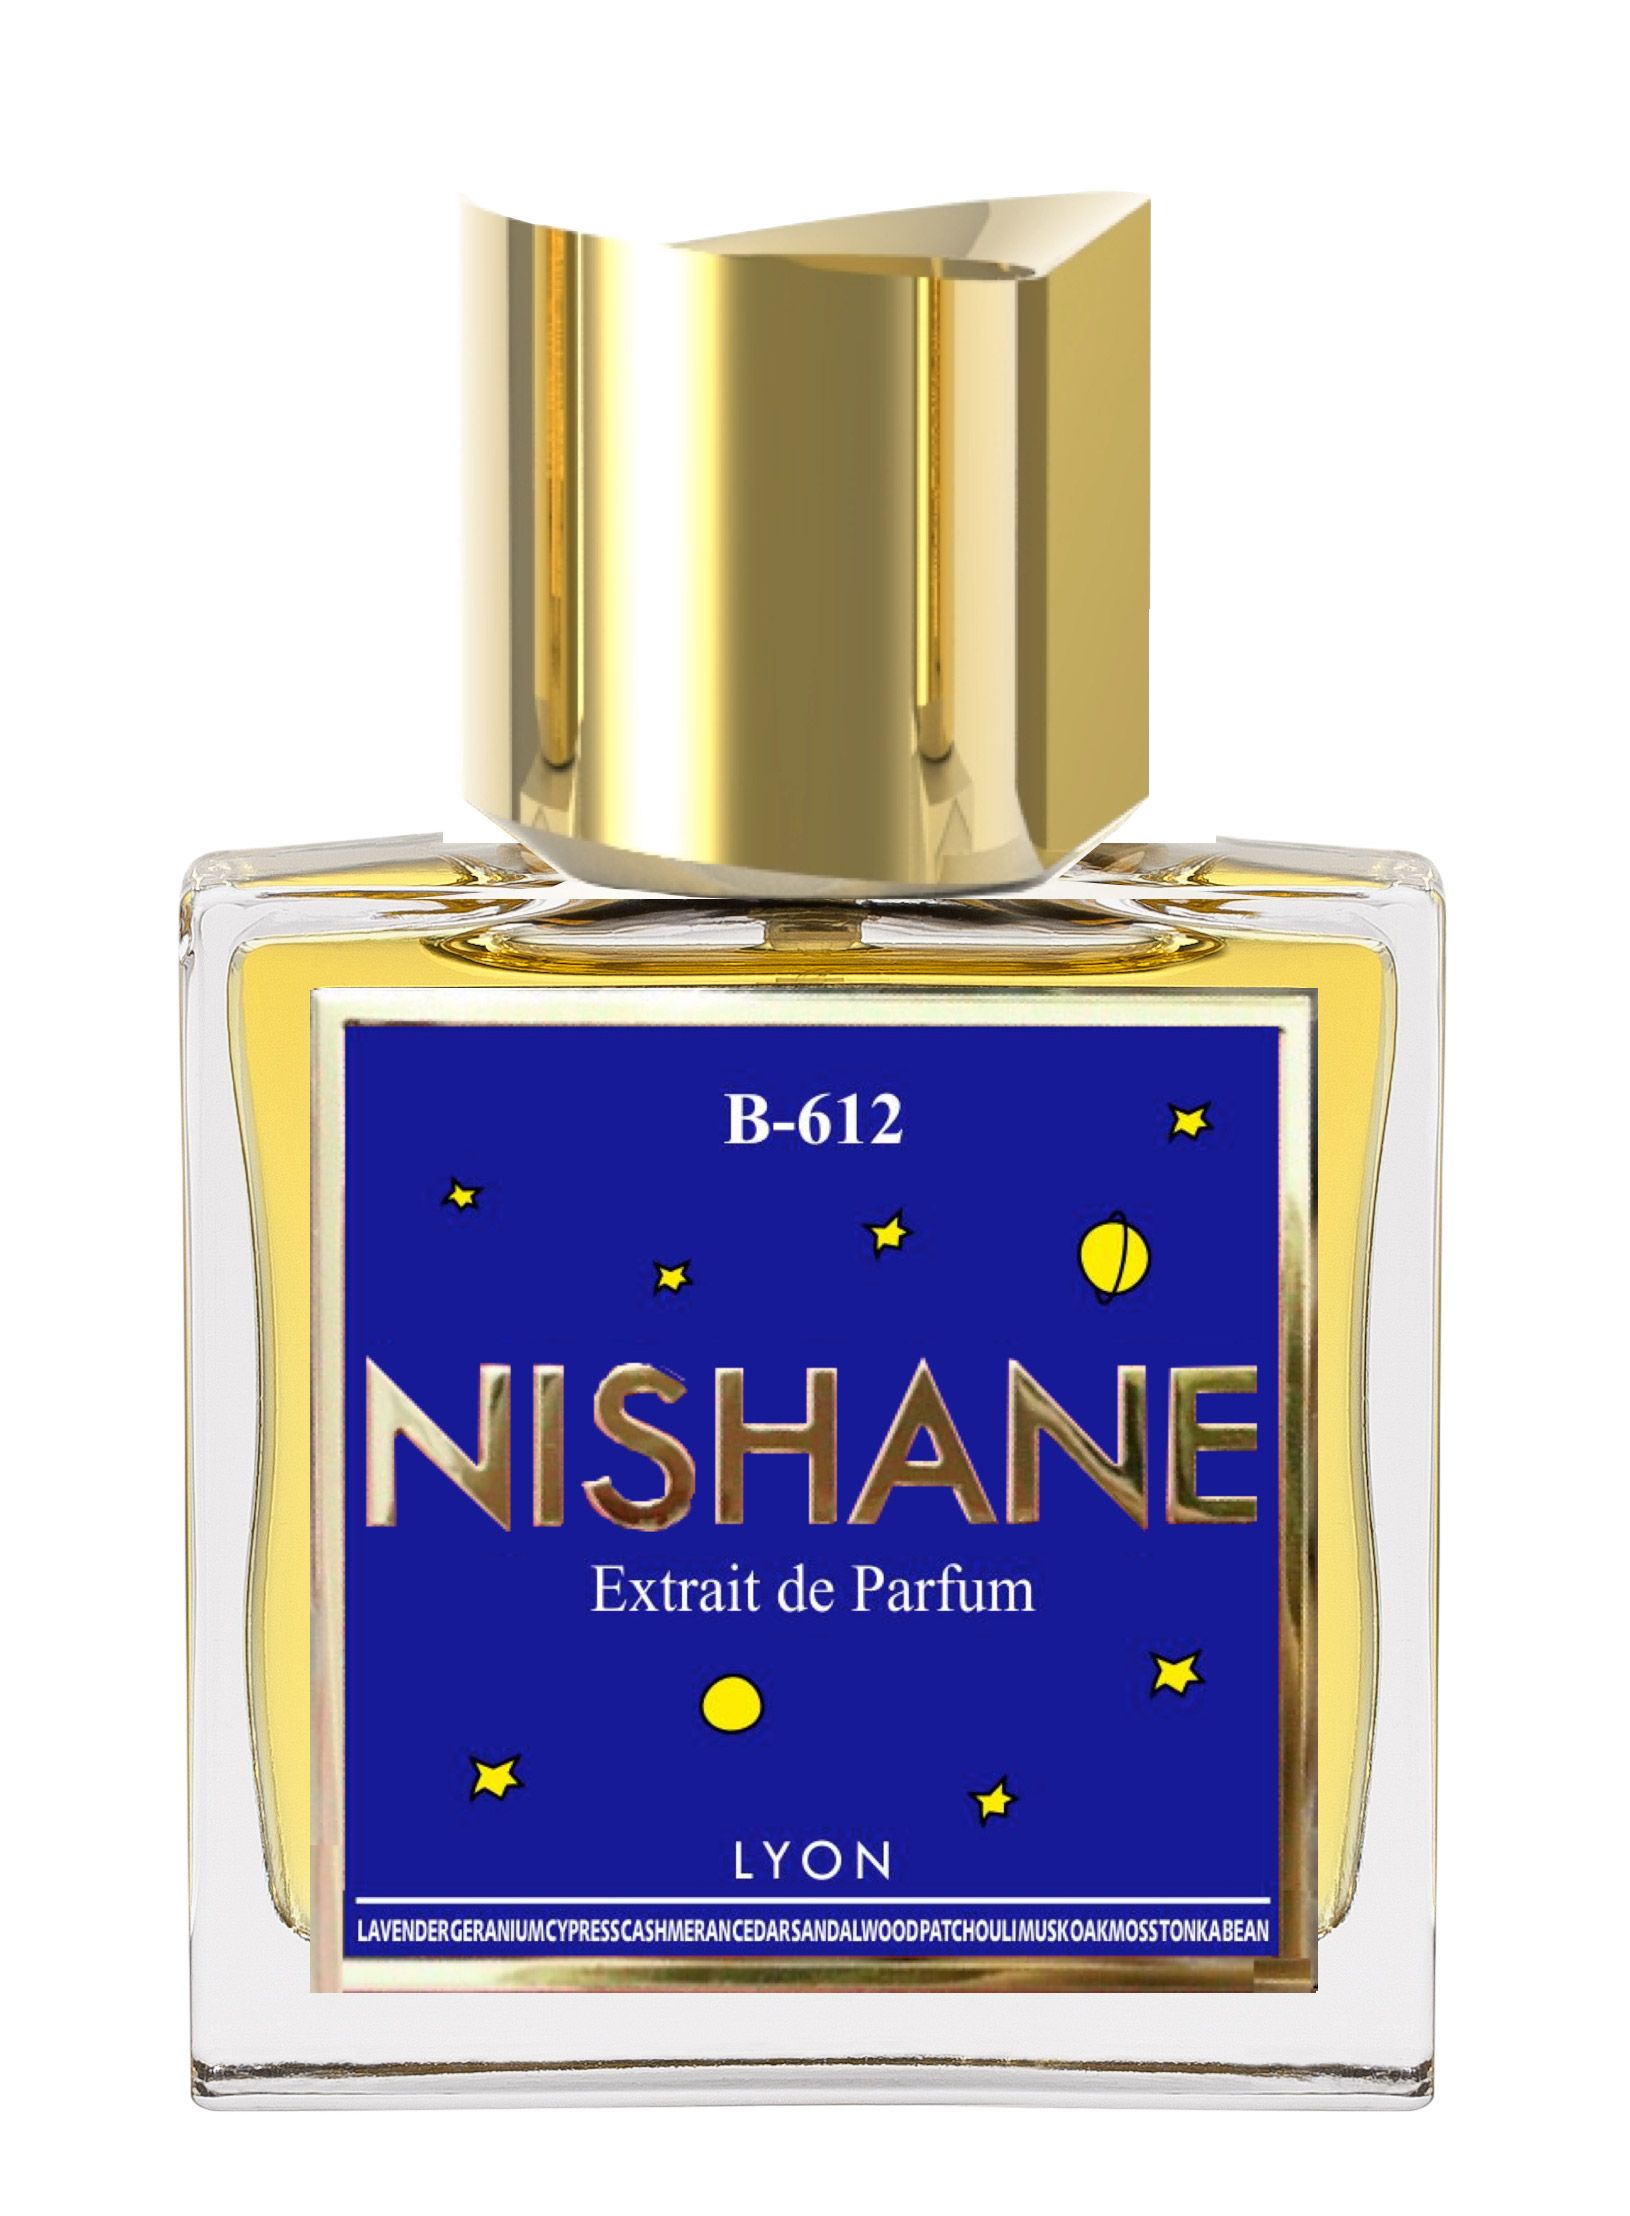 B 612 Nishane Perfume A New Fragrance For Women And Men 2018